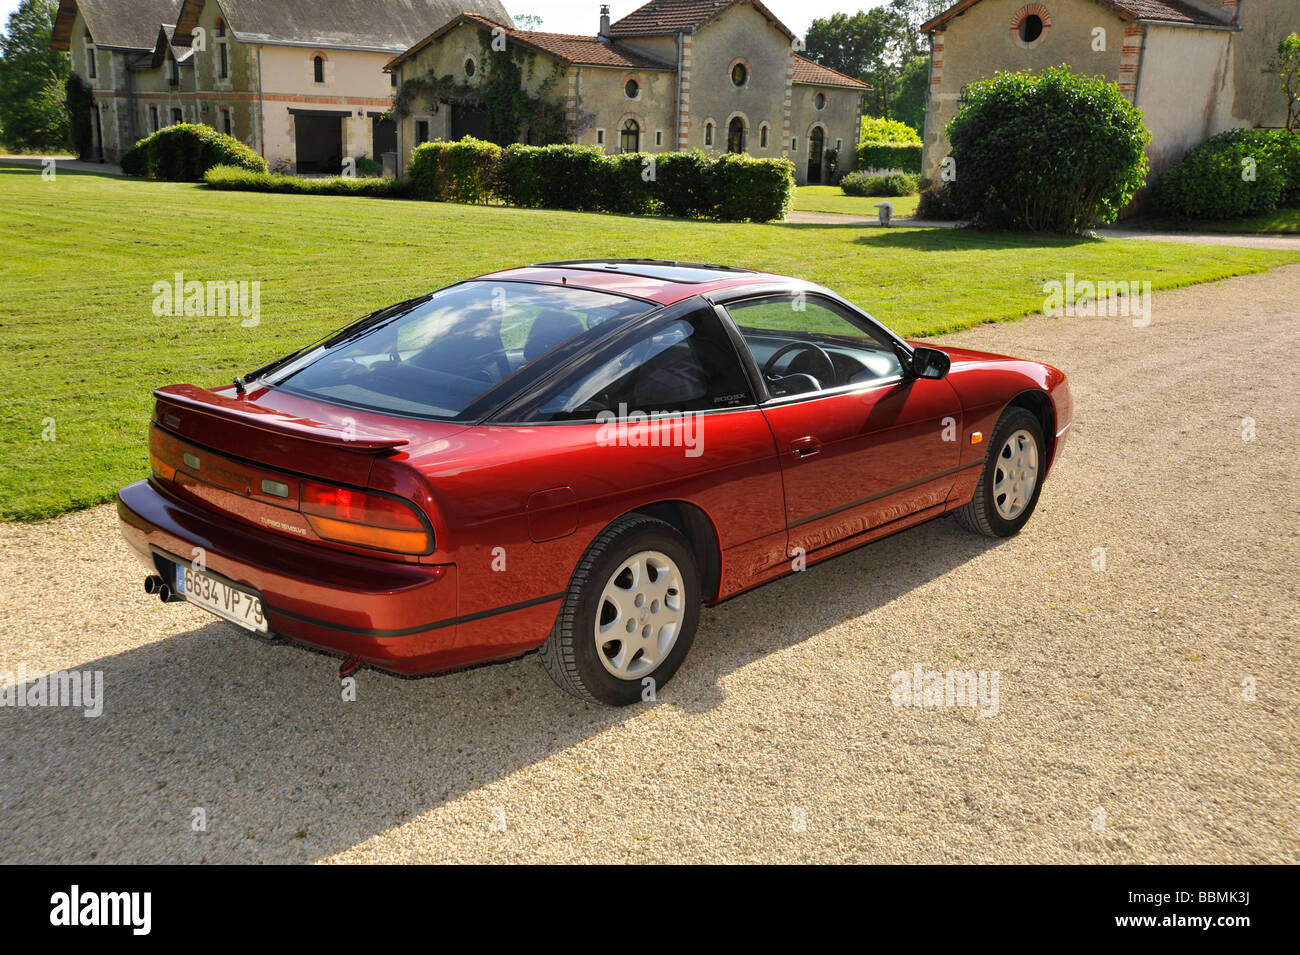 japanese nissan 200sx sport coupe stock photo royalty free image 24425622 alamy. Black Bedroom Furniture Sets. Home Design Ideas